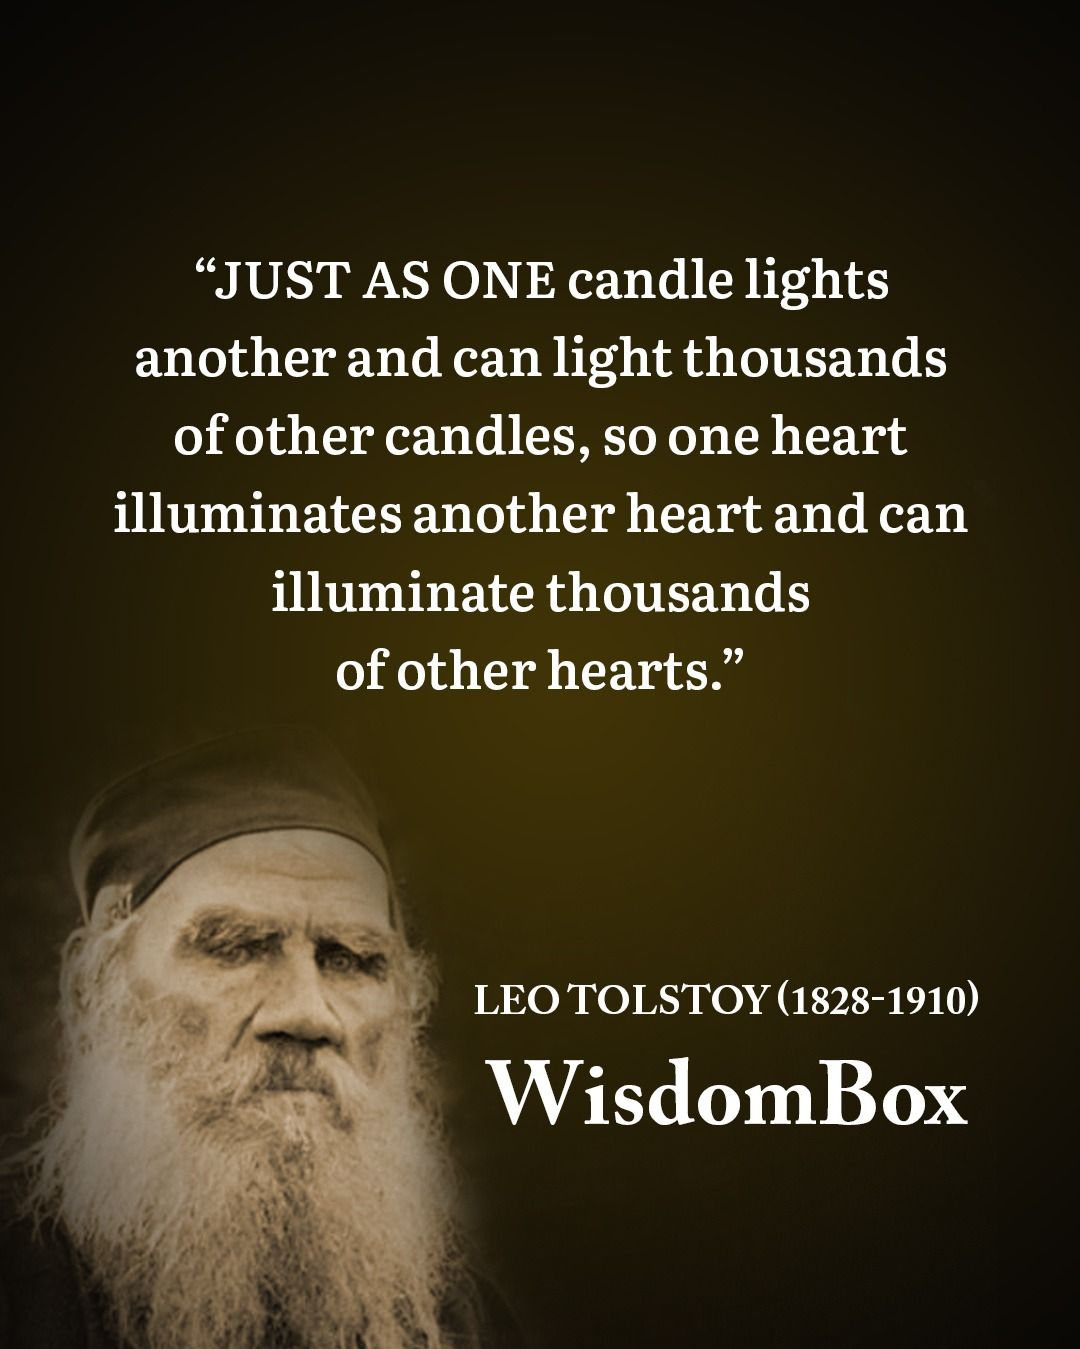 ' Just as one candle lights another and can light thousands of other candles, so one heart illuminates another heart and can illuminate thousands of other hearts' – Leo TOLTSOY [1080×1349]